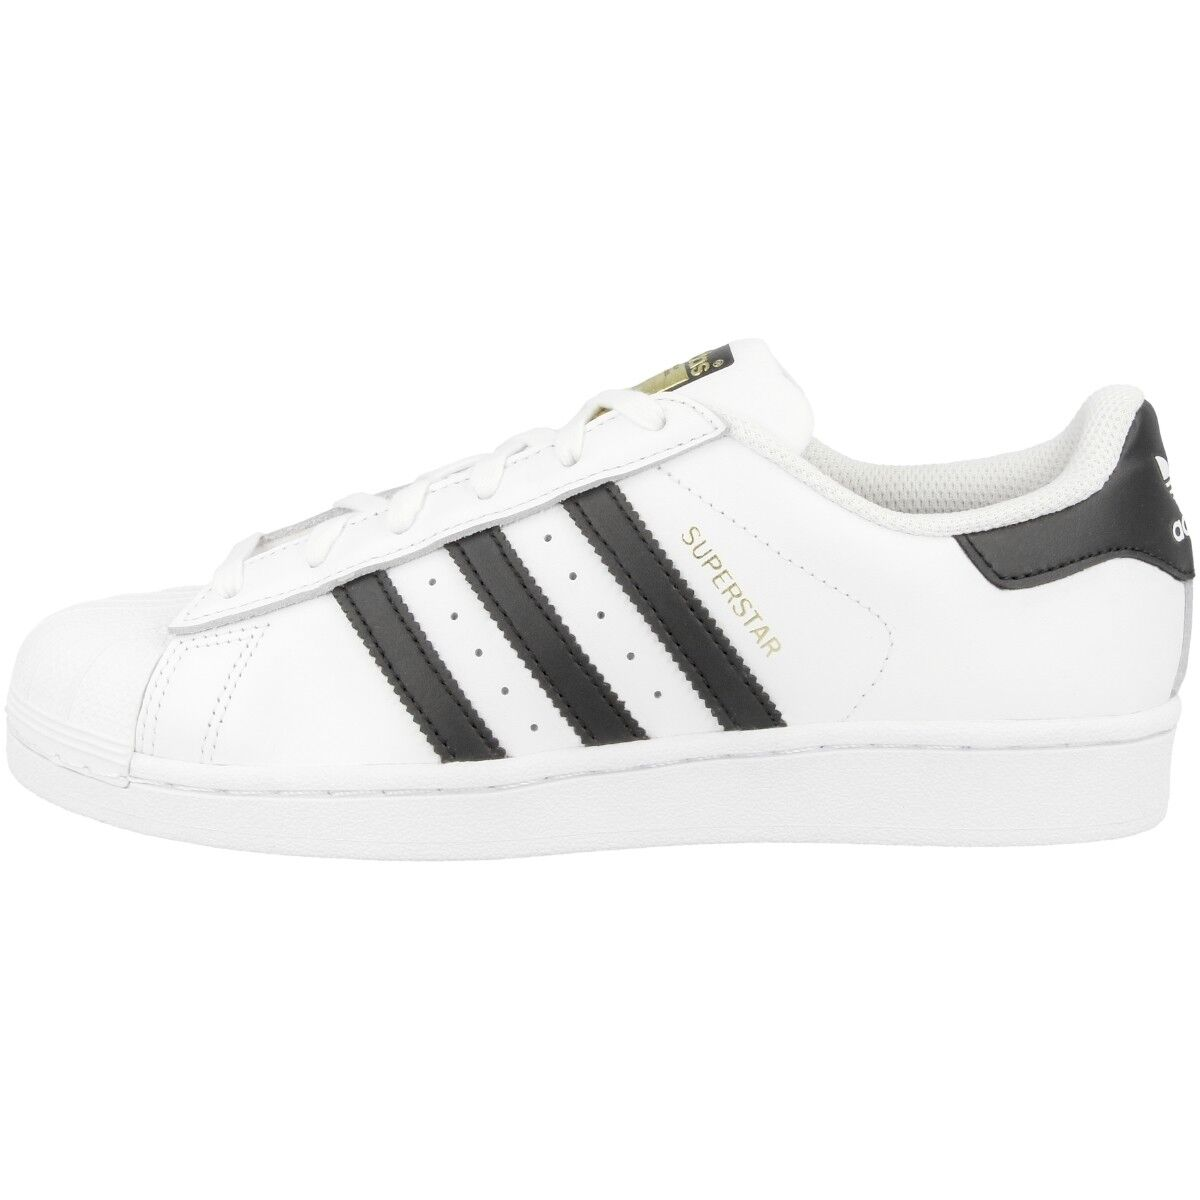 Adidas Superstar J zapatos White Black c77154 retro cortos Dragon Foundation CF